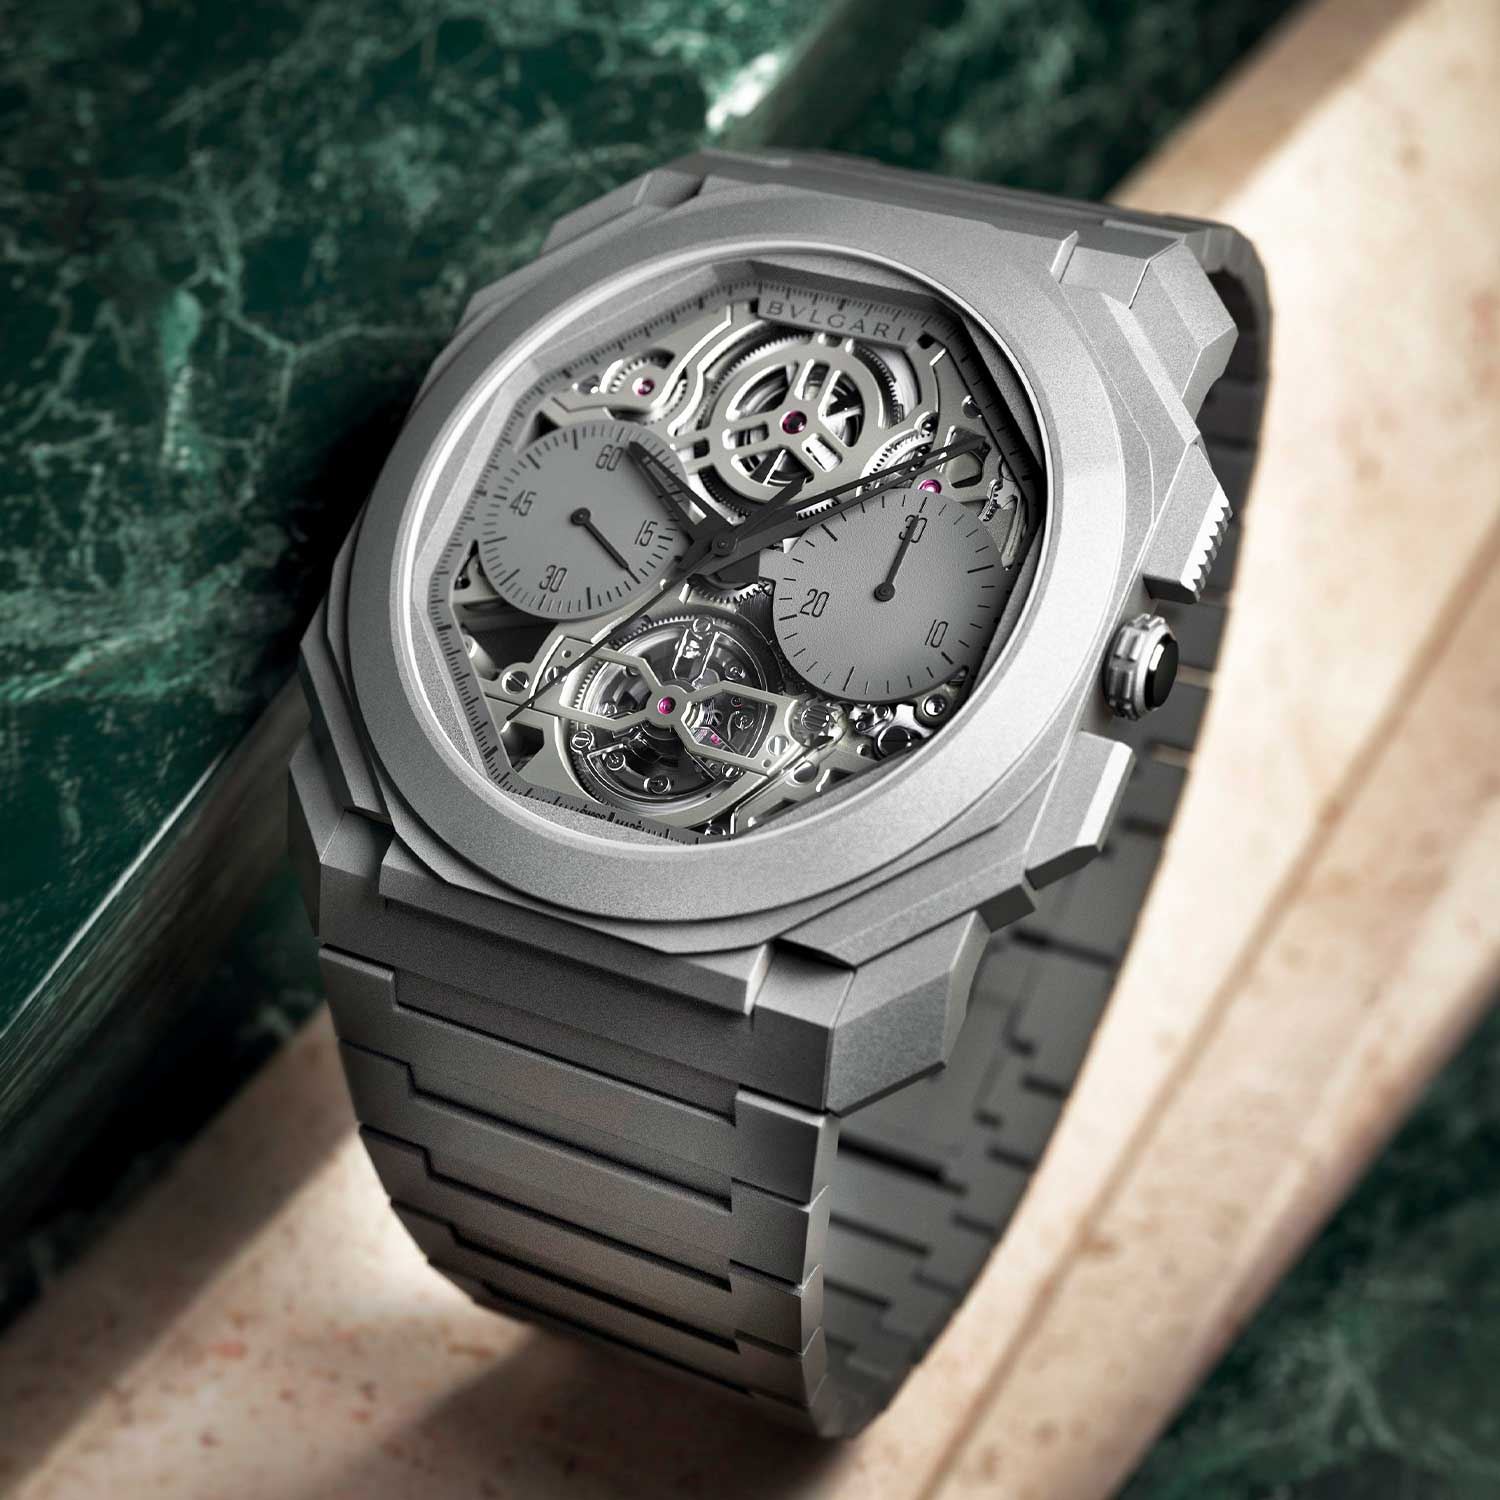 The 2020 Octo Finissimo Tourbillon Chronograph Skeleton Automatic